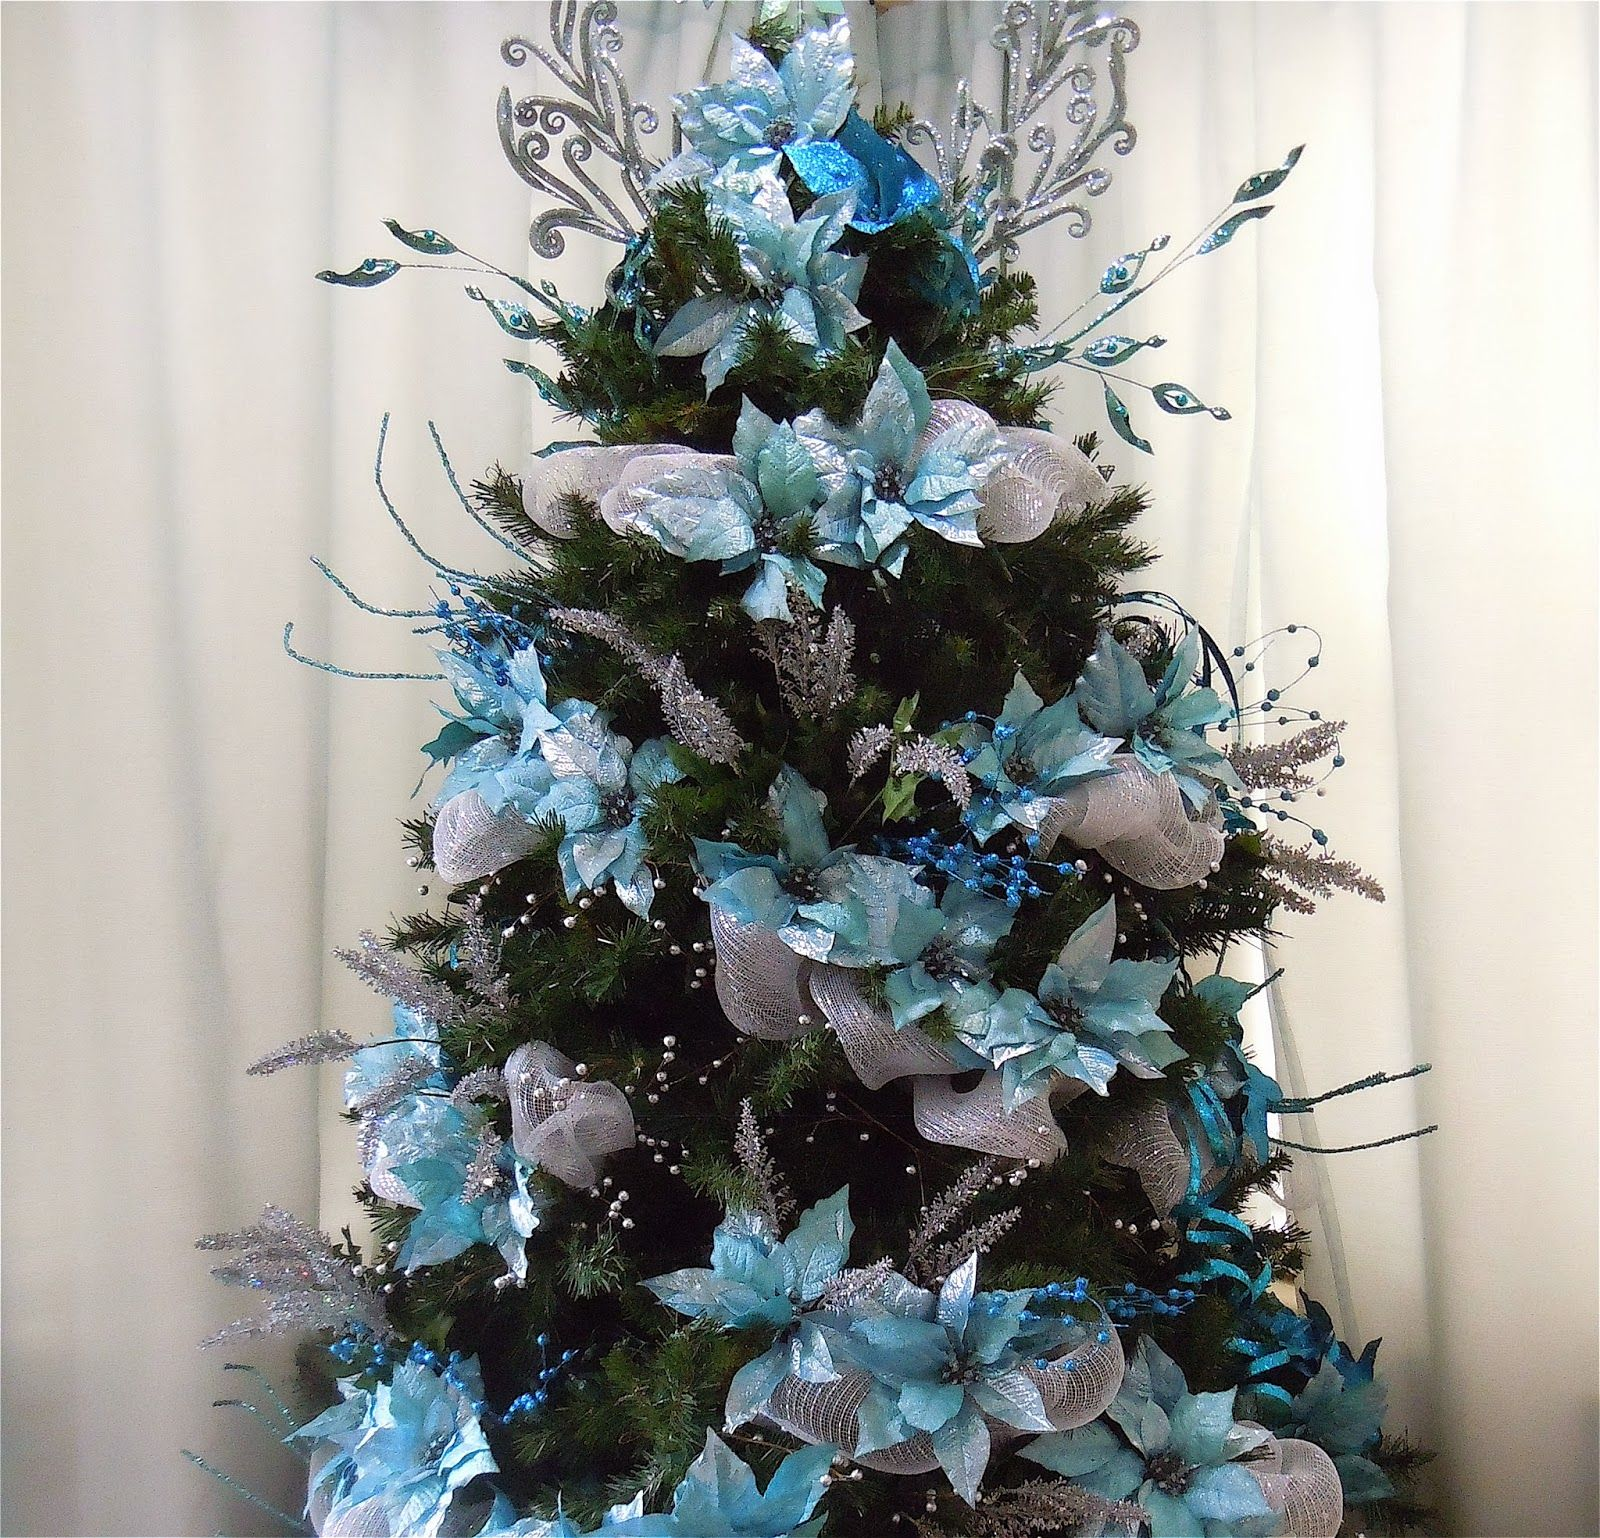 My Blue Motif Christmas Tree Decorated With Blue Poinsettia Blue Berries Silver Ribbon Gl Silver Christmas Tree Turquoise Christmas Tree Turquoise Christmas